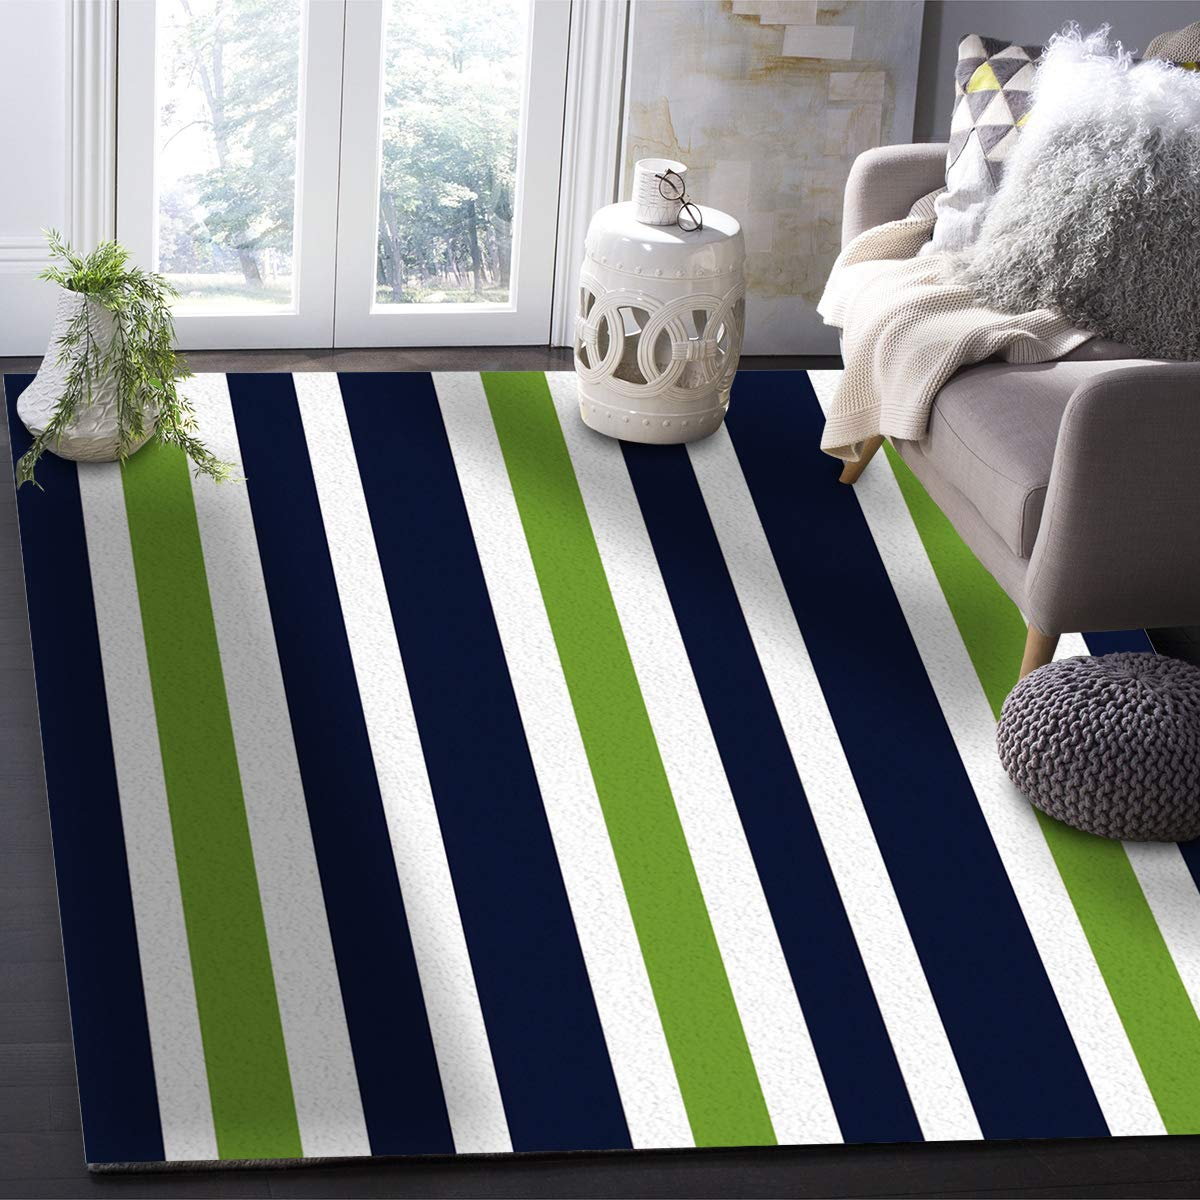 Buy Our Wings Modern Area Rug Navy Blue Lime Green And White Stripe 4 Feet By 6 Feet Indoor Area Rugs Living Room Carpets For Home Decor Bedroom Nursery Rugs Online At